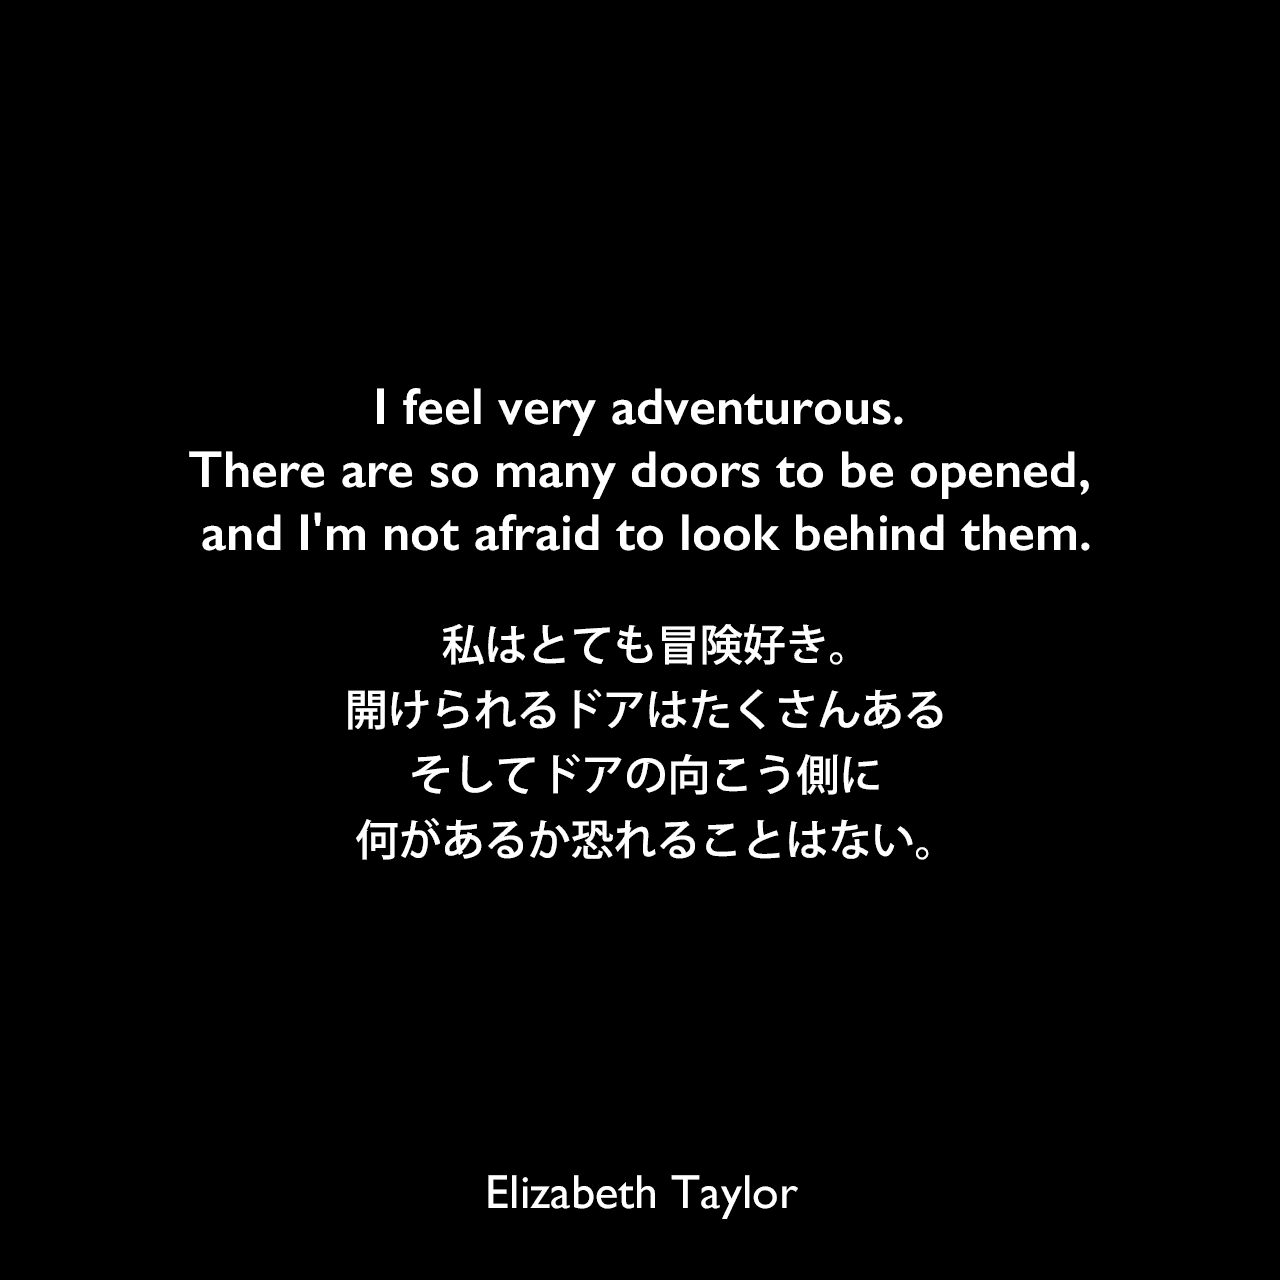 I feel very adventurous. There are so many doors to be opened, and I'm not afraid to look behind them.私はとても冒険好き。開けられるドアはたくさんある、そしてドアの向こう側に何があるか恐れることはない。Elizabeth Taylor